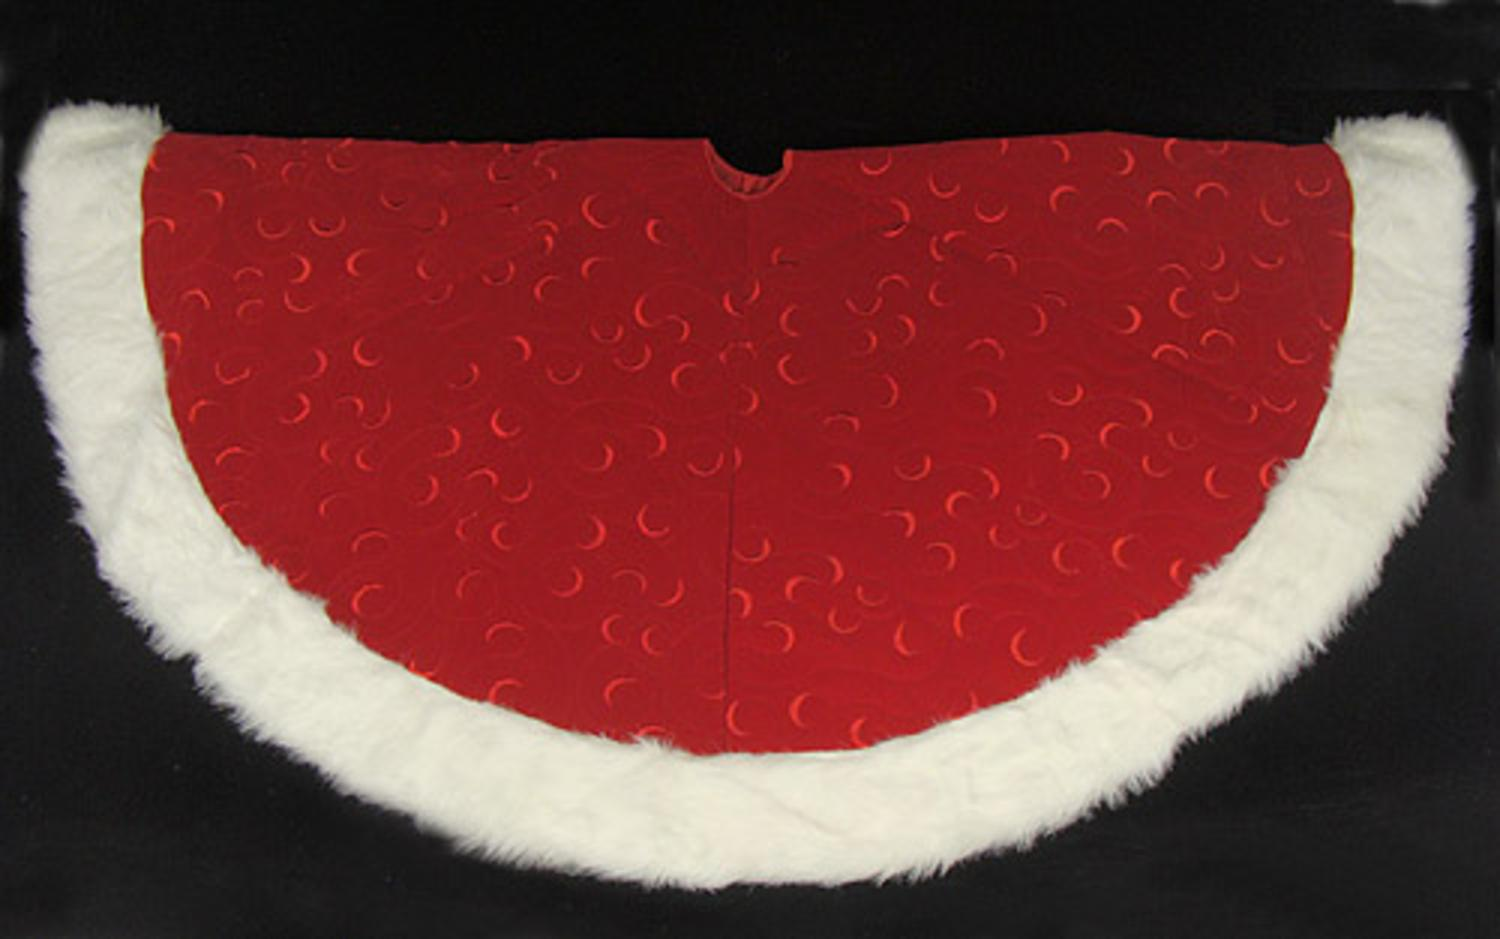 ''56'''' Red Swirl Embossed Christmas Tree Skirt with White Faux Fur Trim''